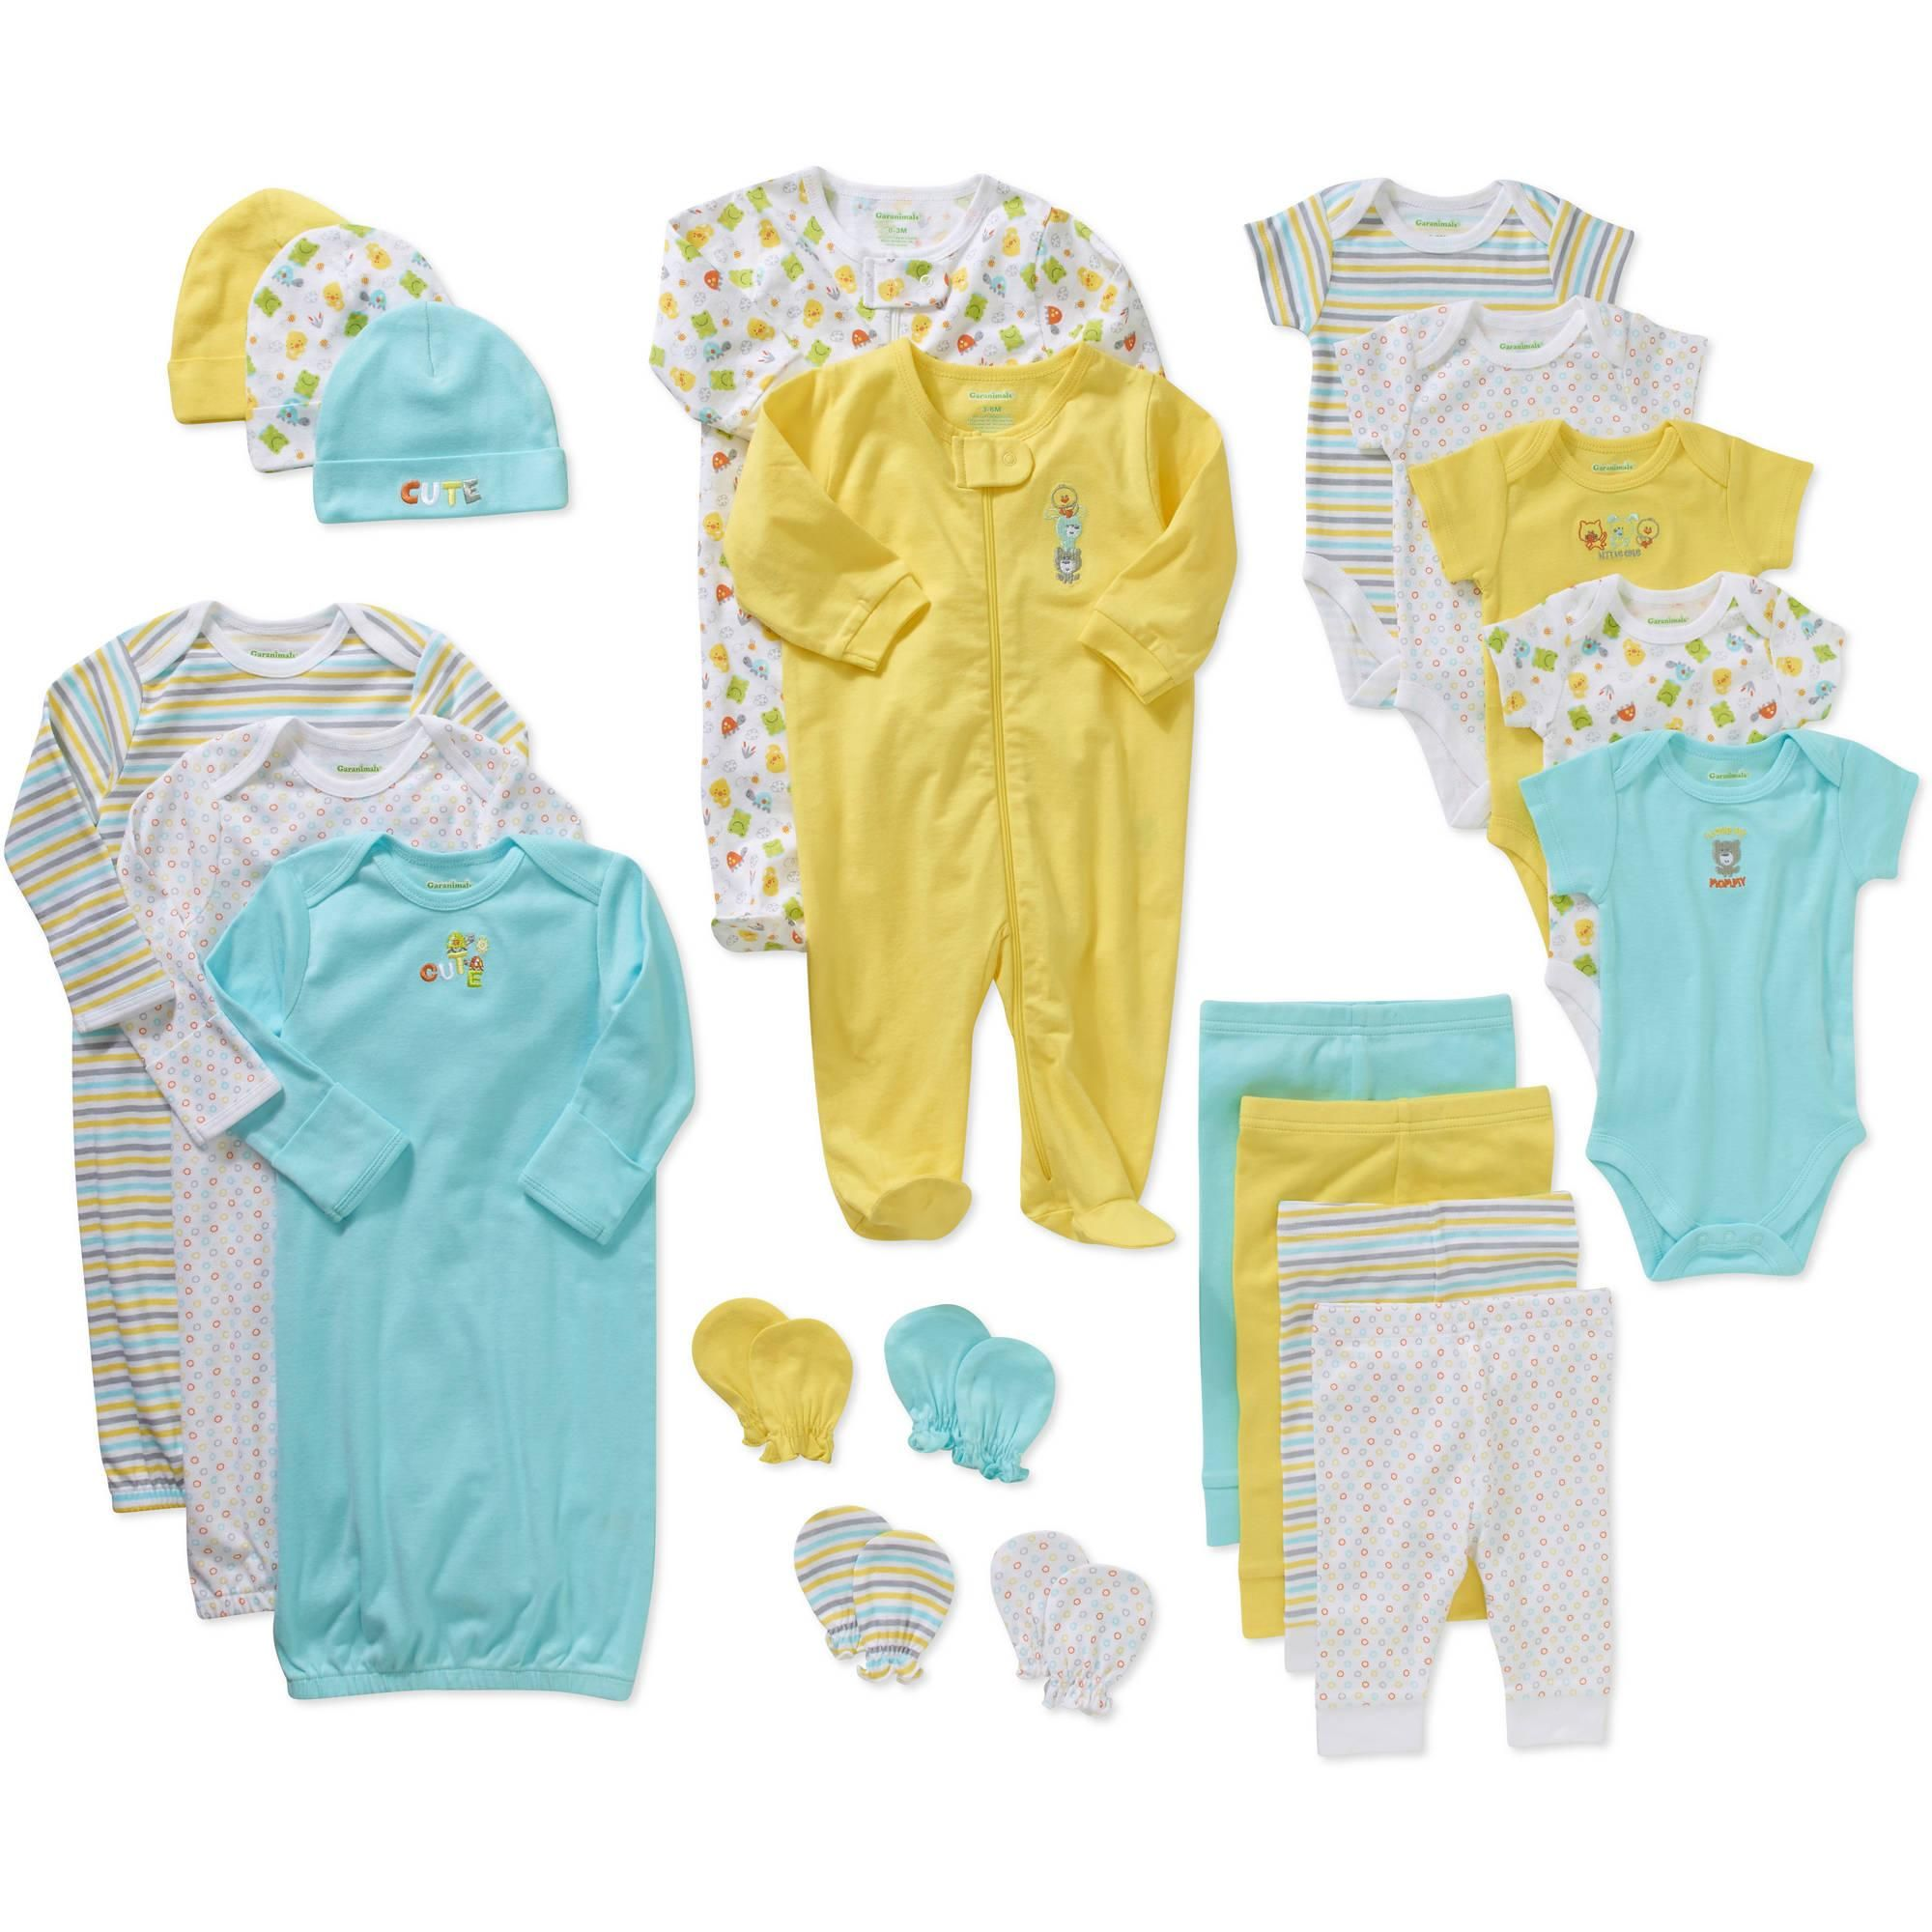 Walmart coupons for baby clothes